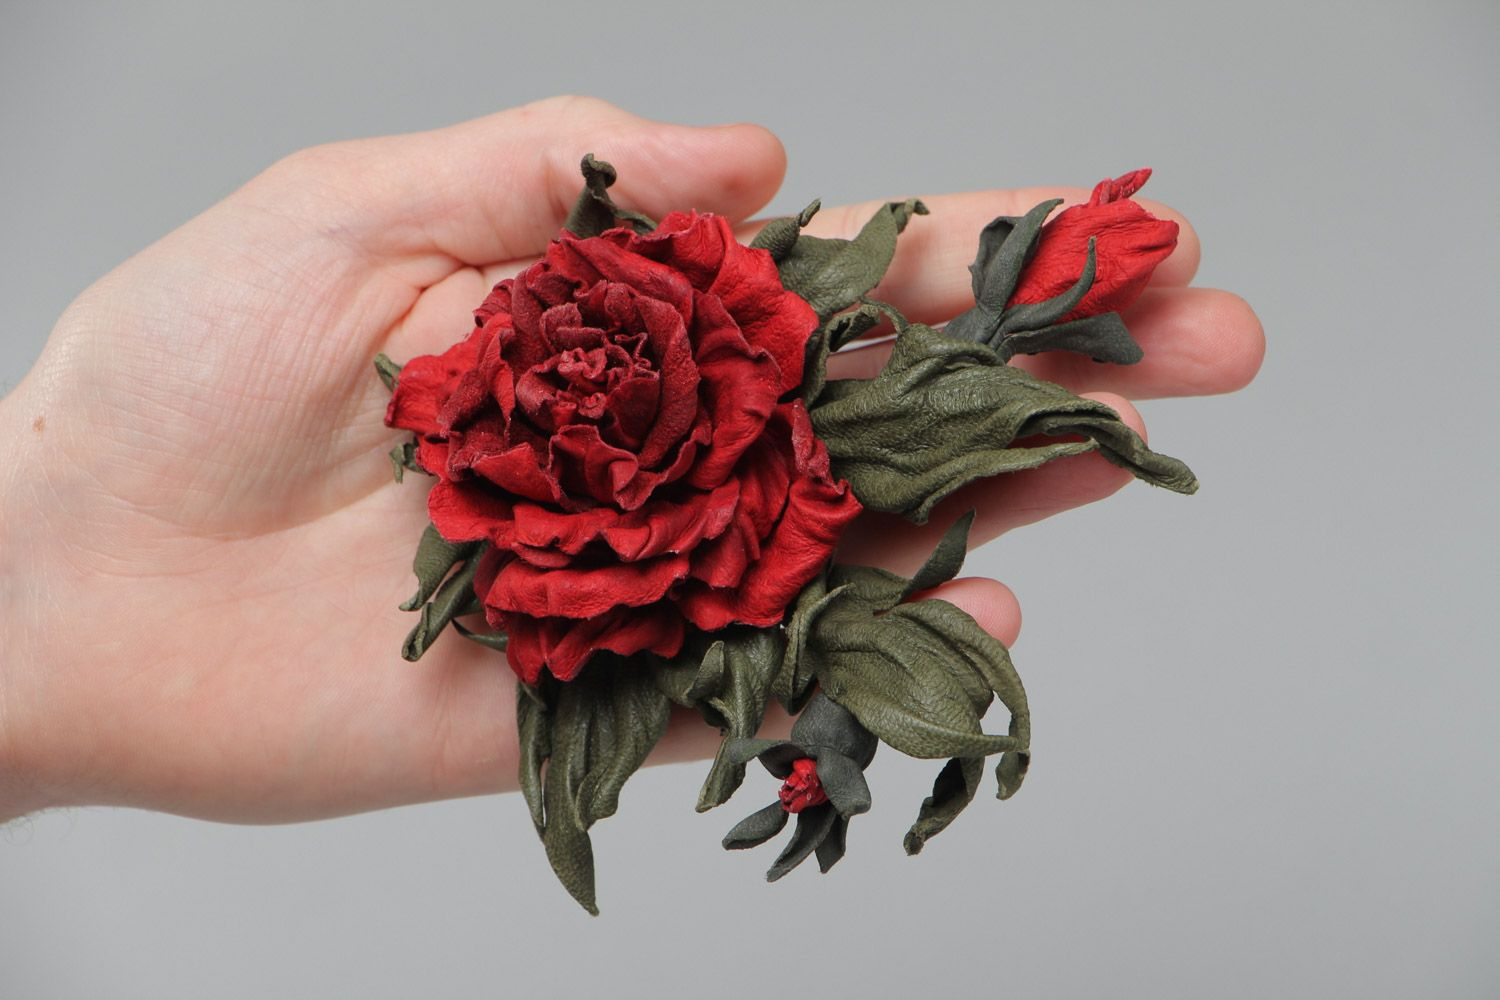 Handmade natural leather brooch with dark red volume flower for outer clothes photo 5